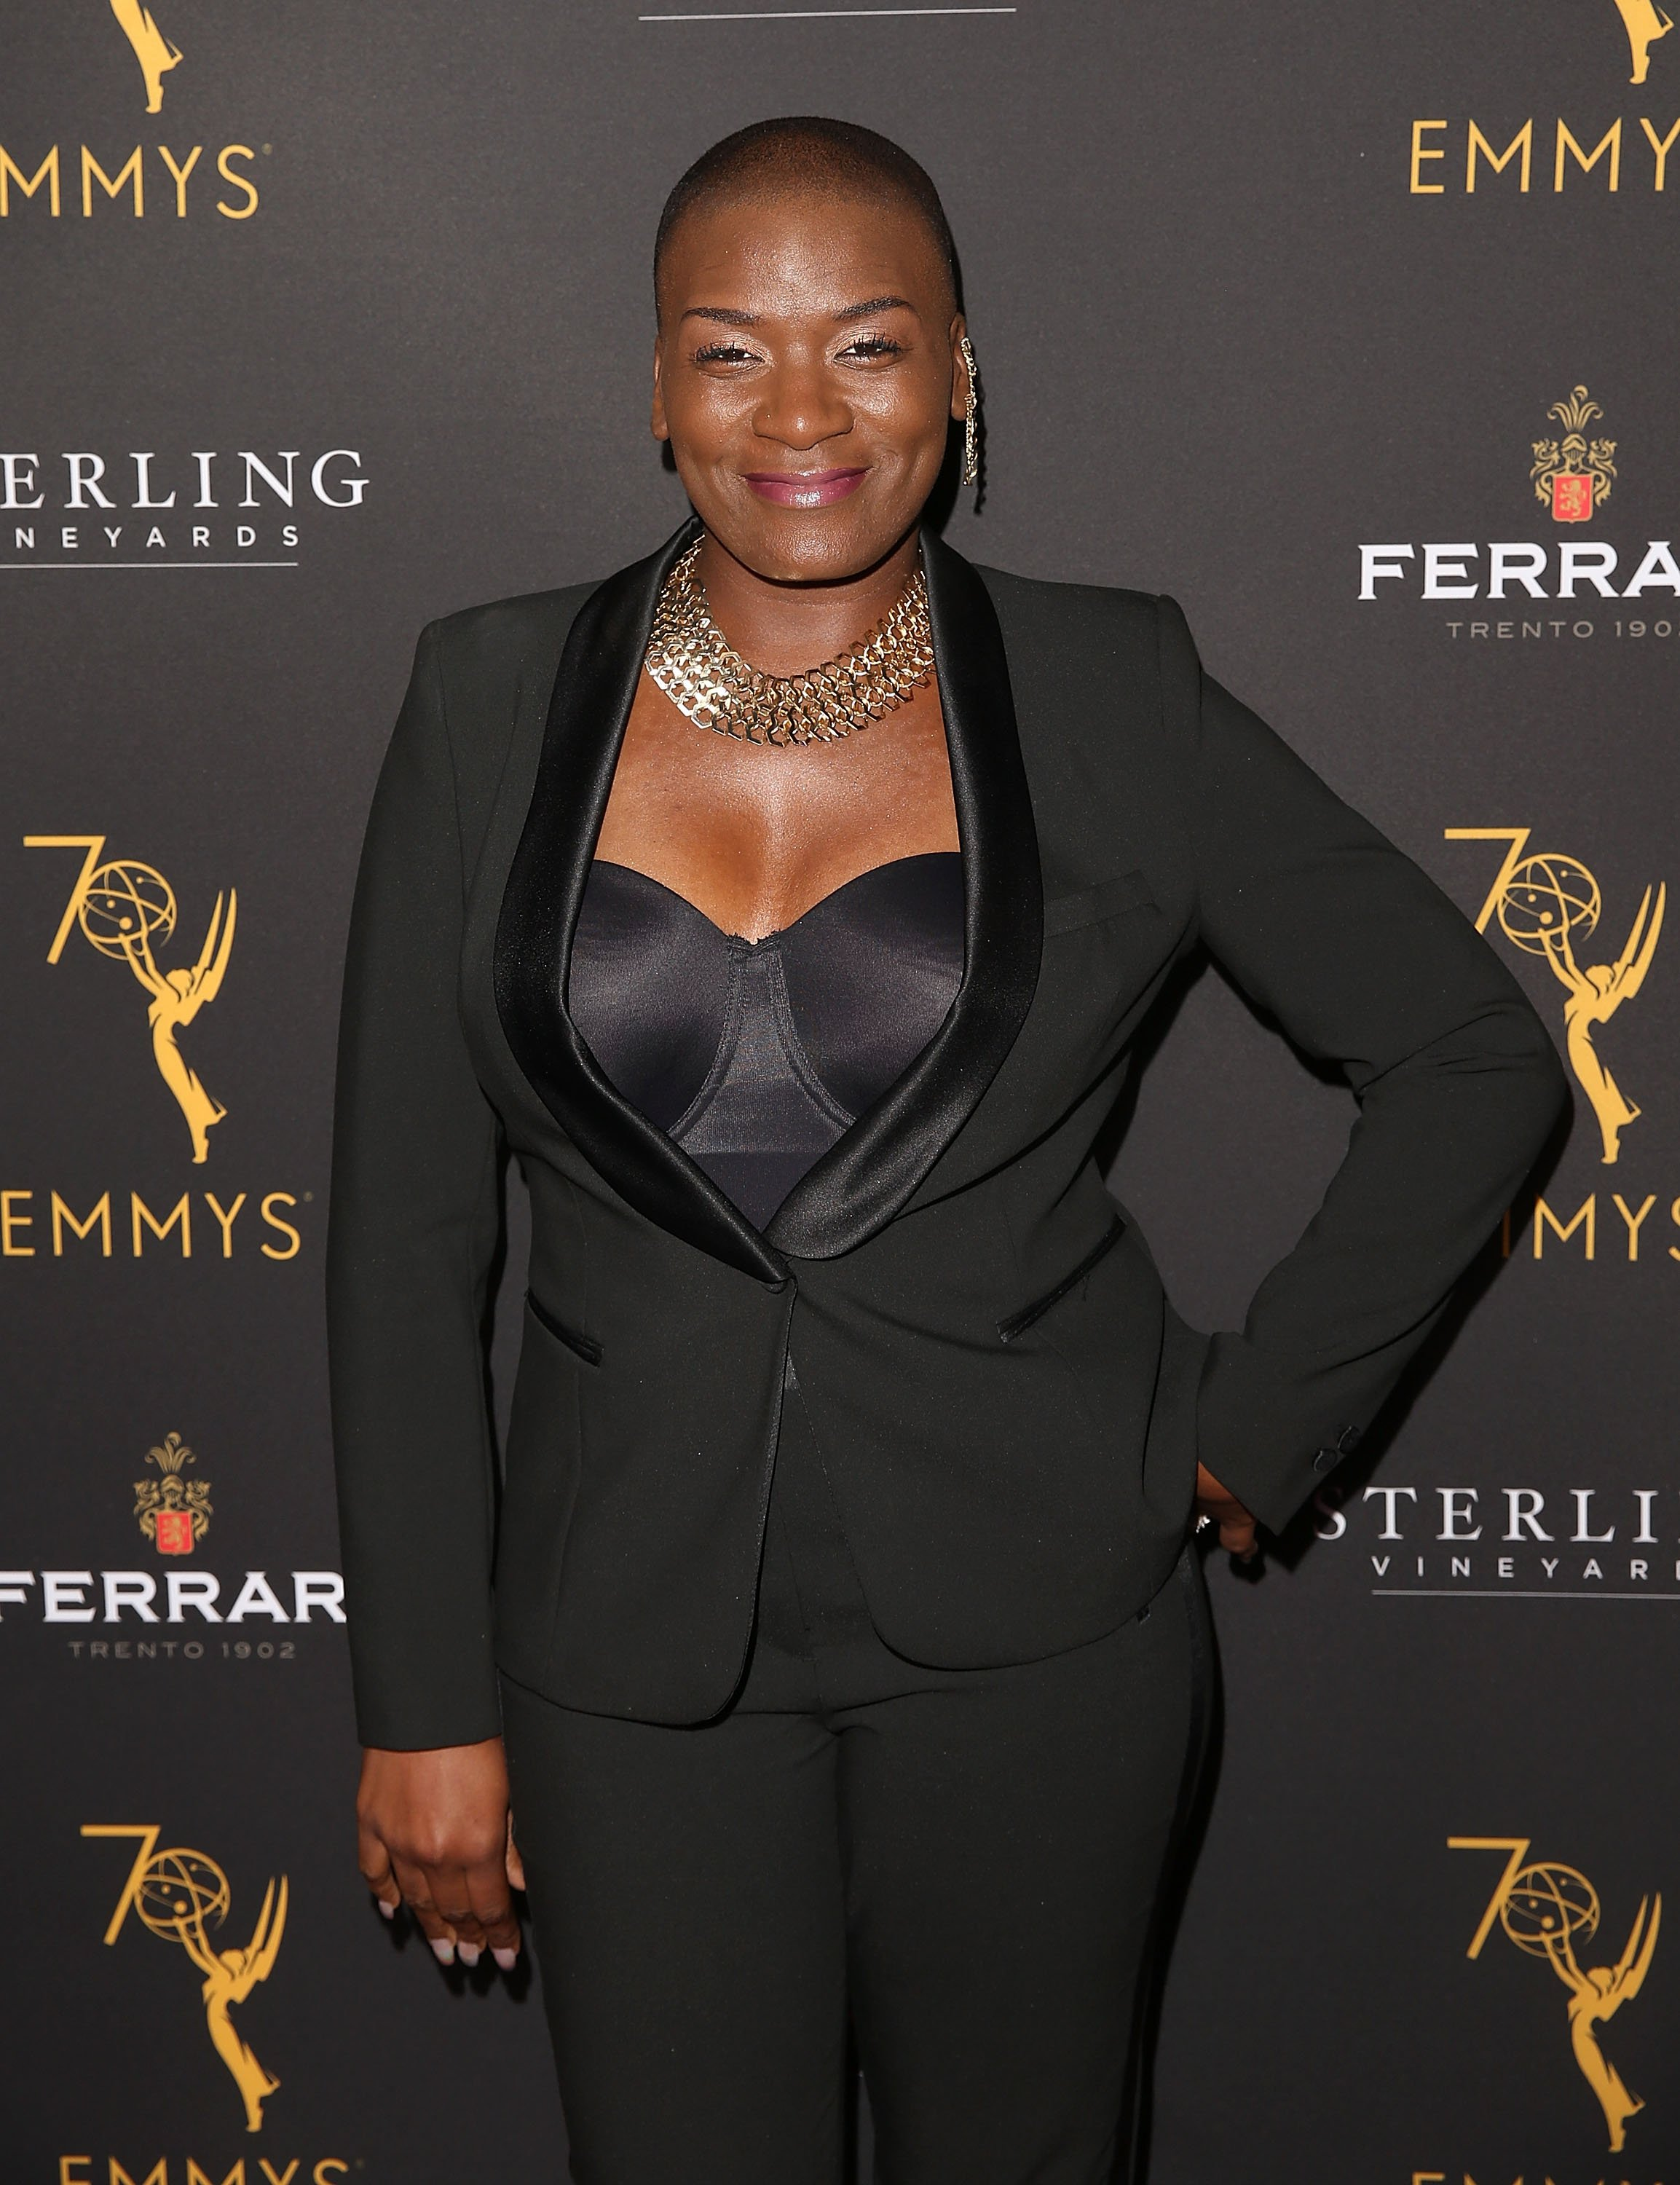 Janice Freeman at the 70th Emmy Awards Nominees Reception for Outstanding Casting Directors in Beverly Hills, California on Sep. 6, 2018. | PhotO: Getty Images